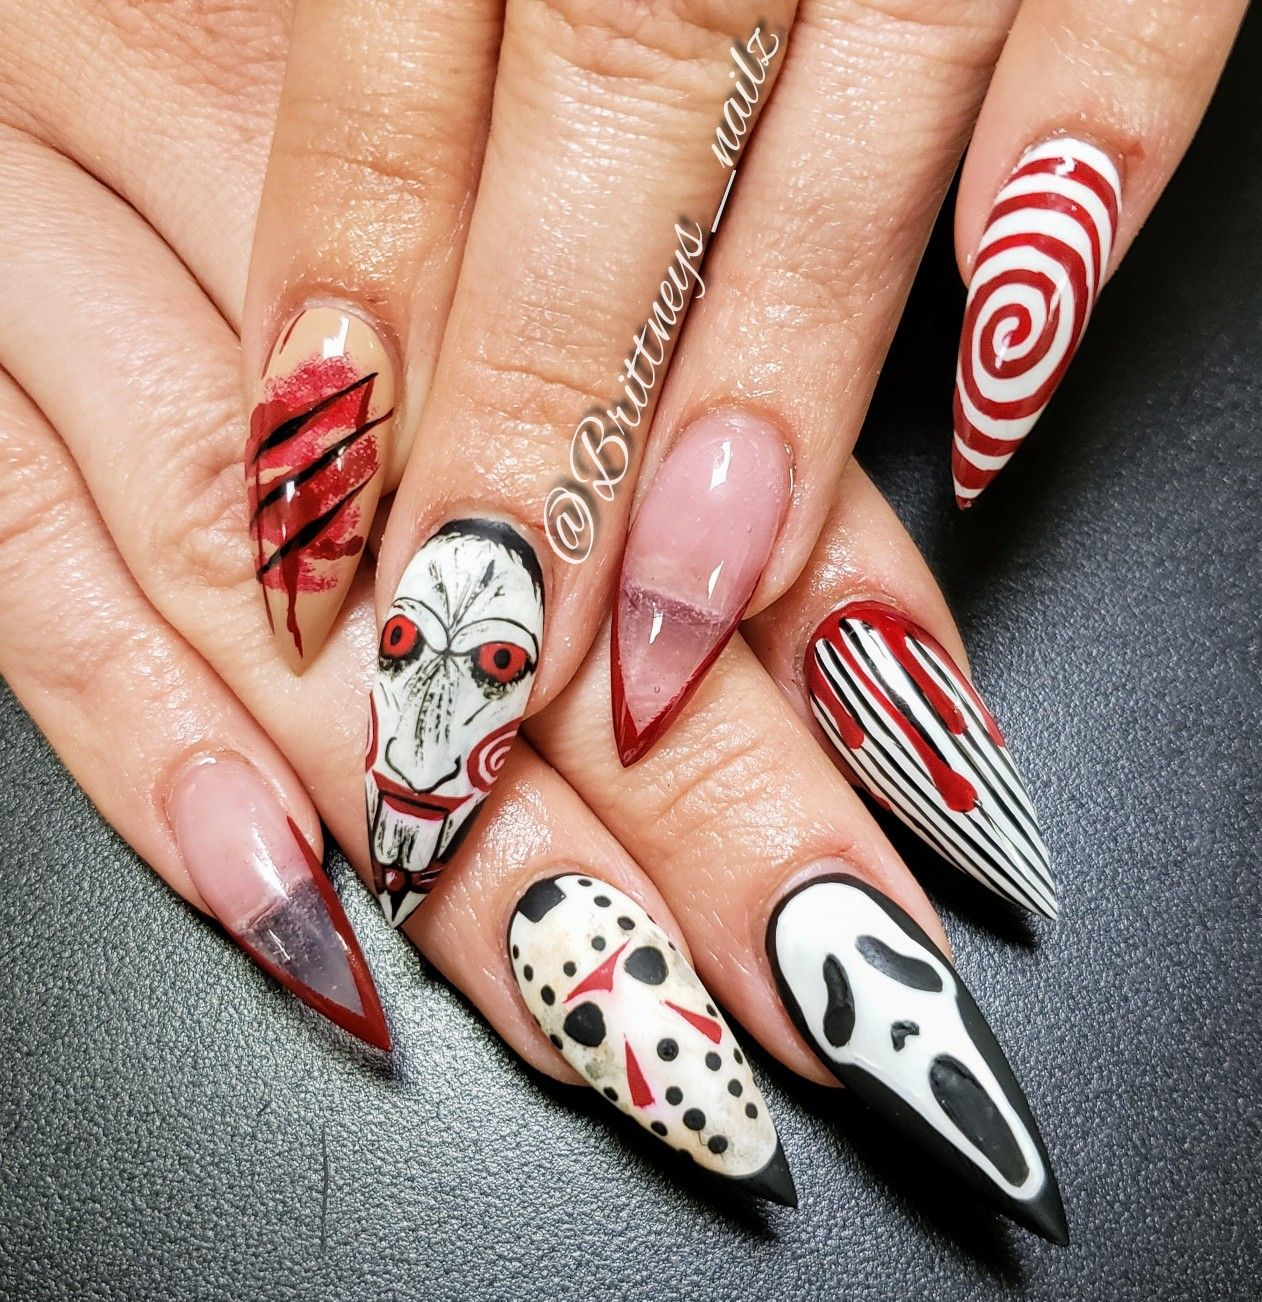 Halloween In 2020 Halloween Nail Designs Scary Nail Art Scary Halloween Nails Design